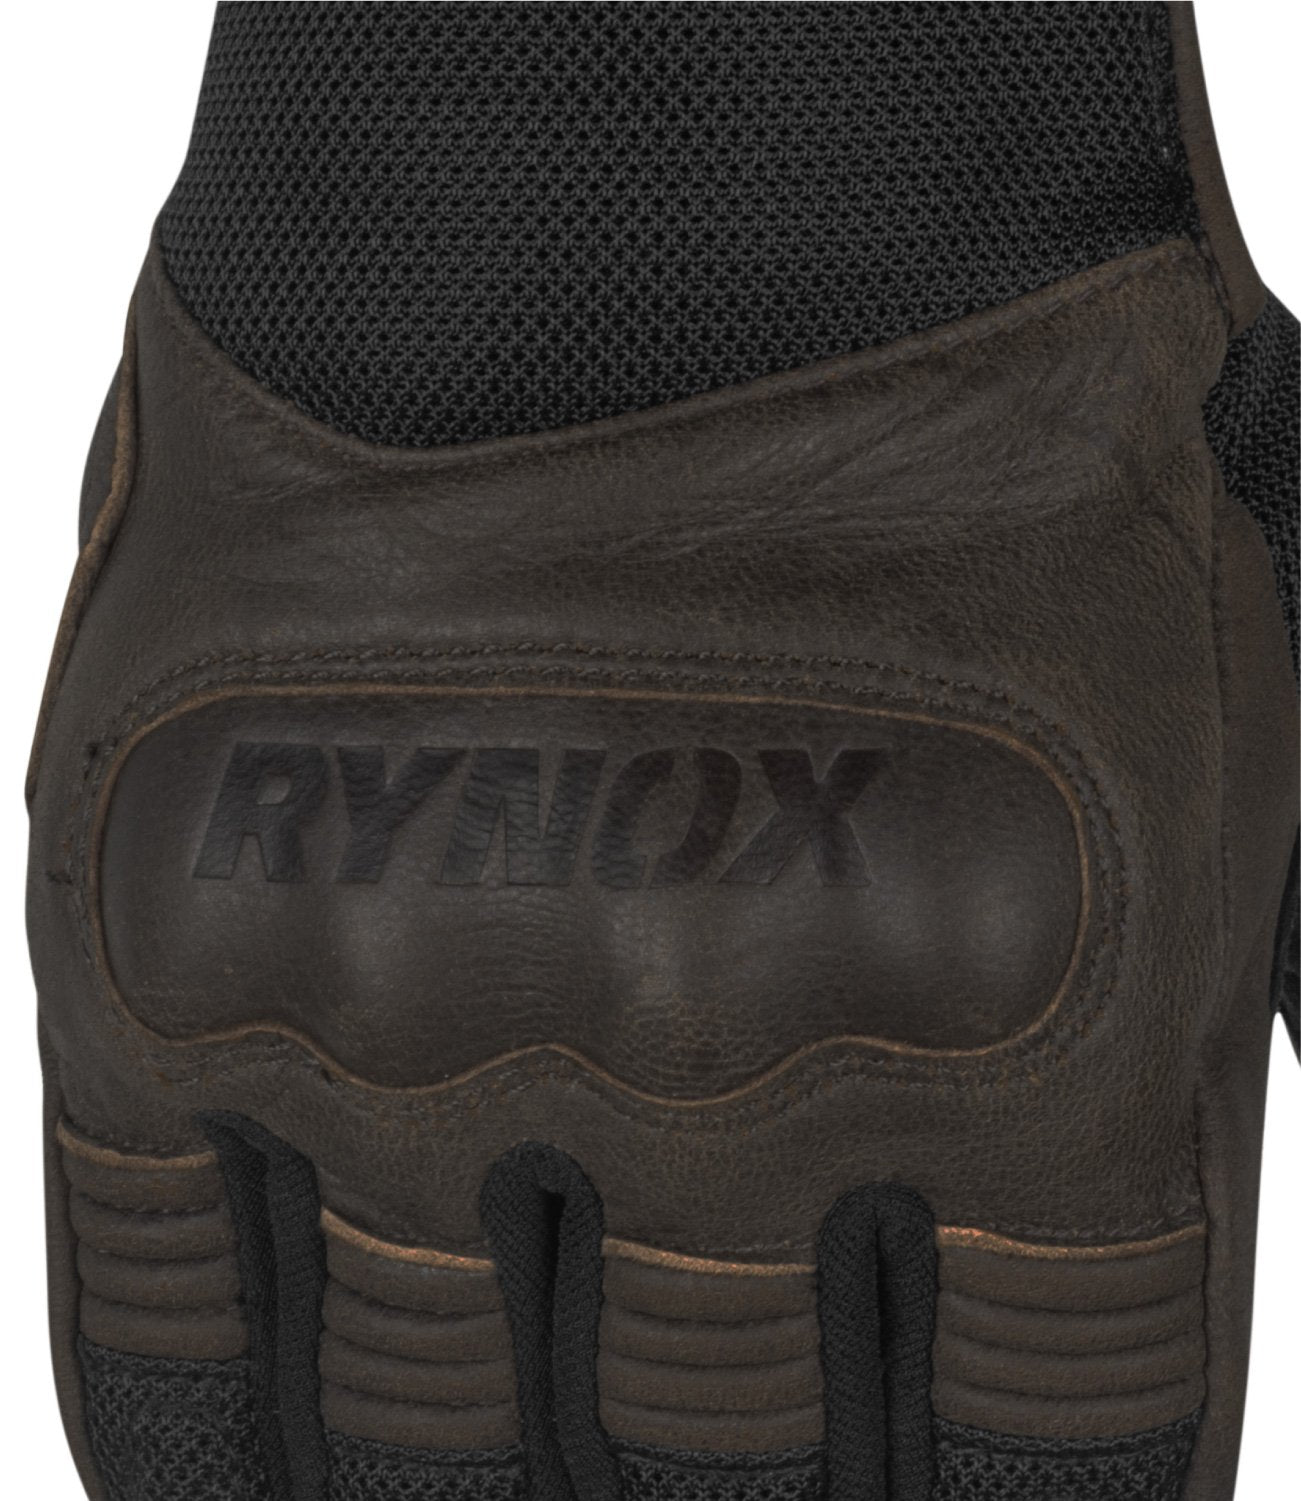 Rynox Urban Gloves Brown 7